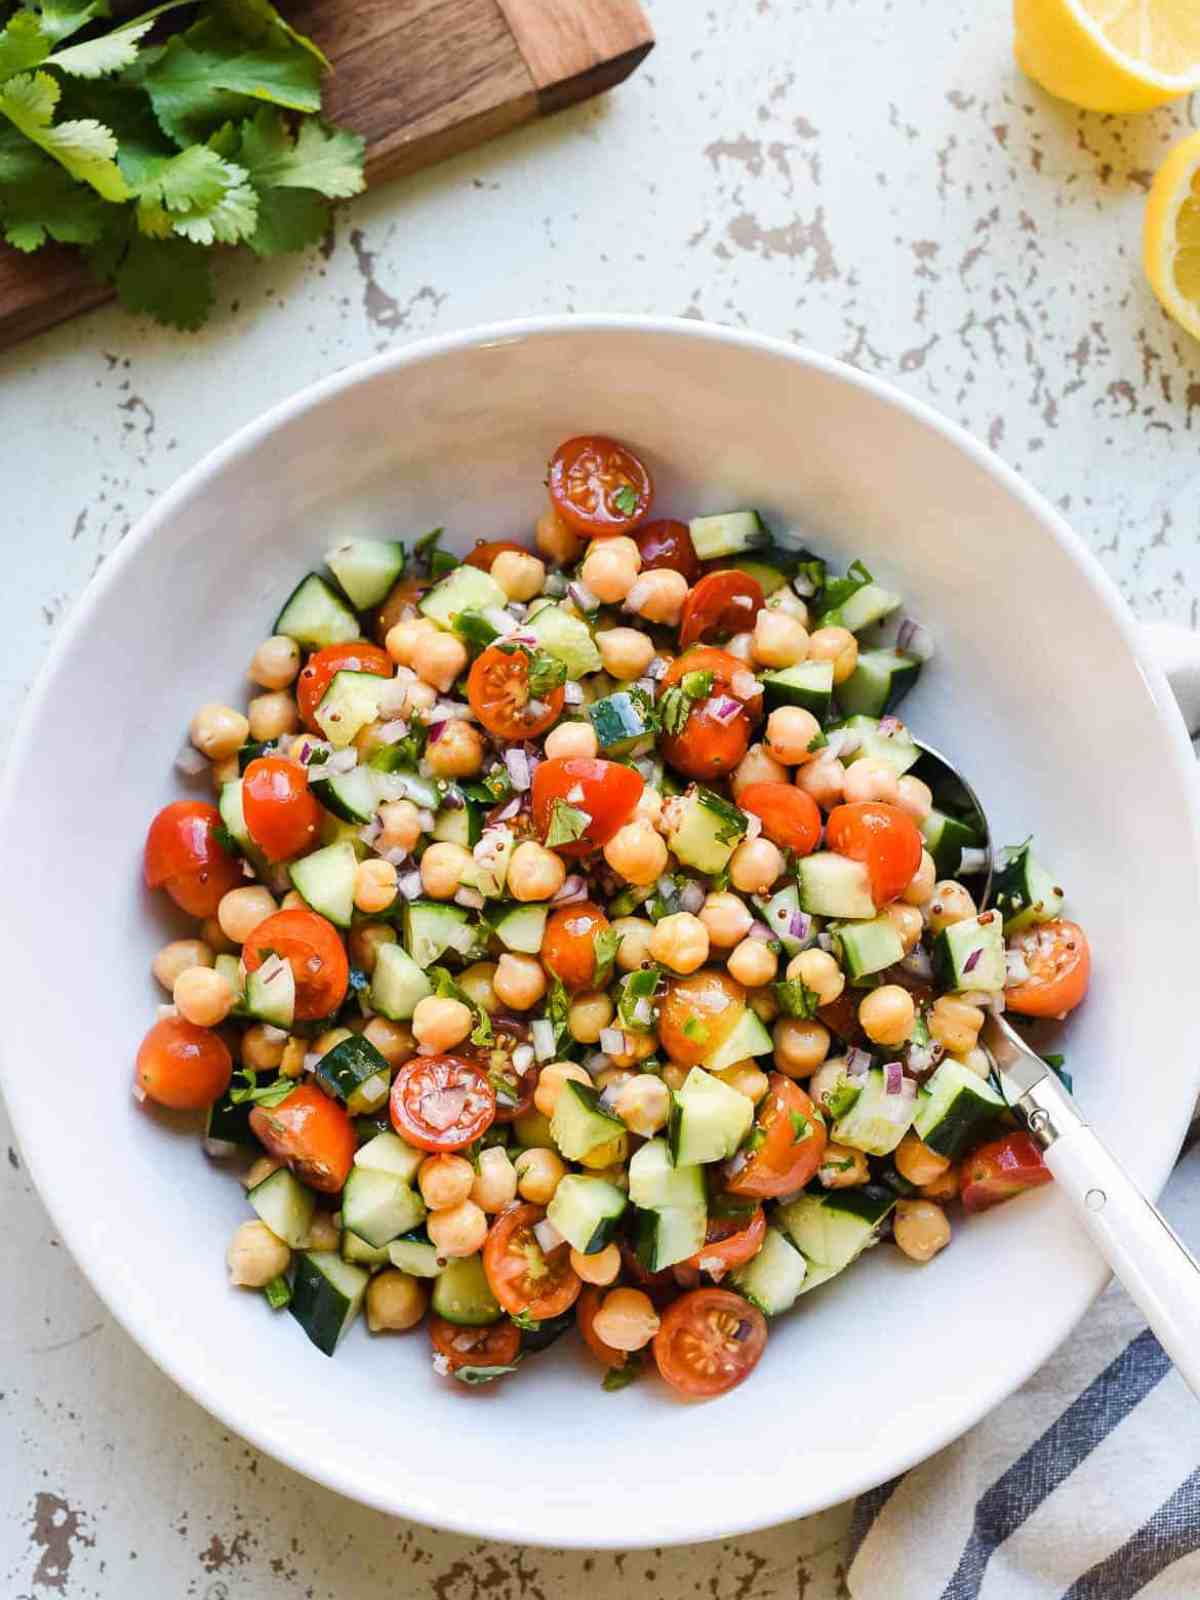 Chickpea Salad with tomatoes and cucumbers in a white bowl on a light background